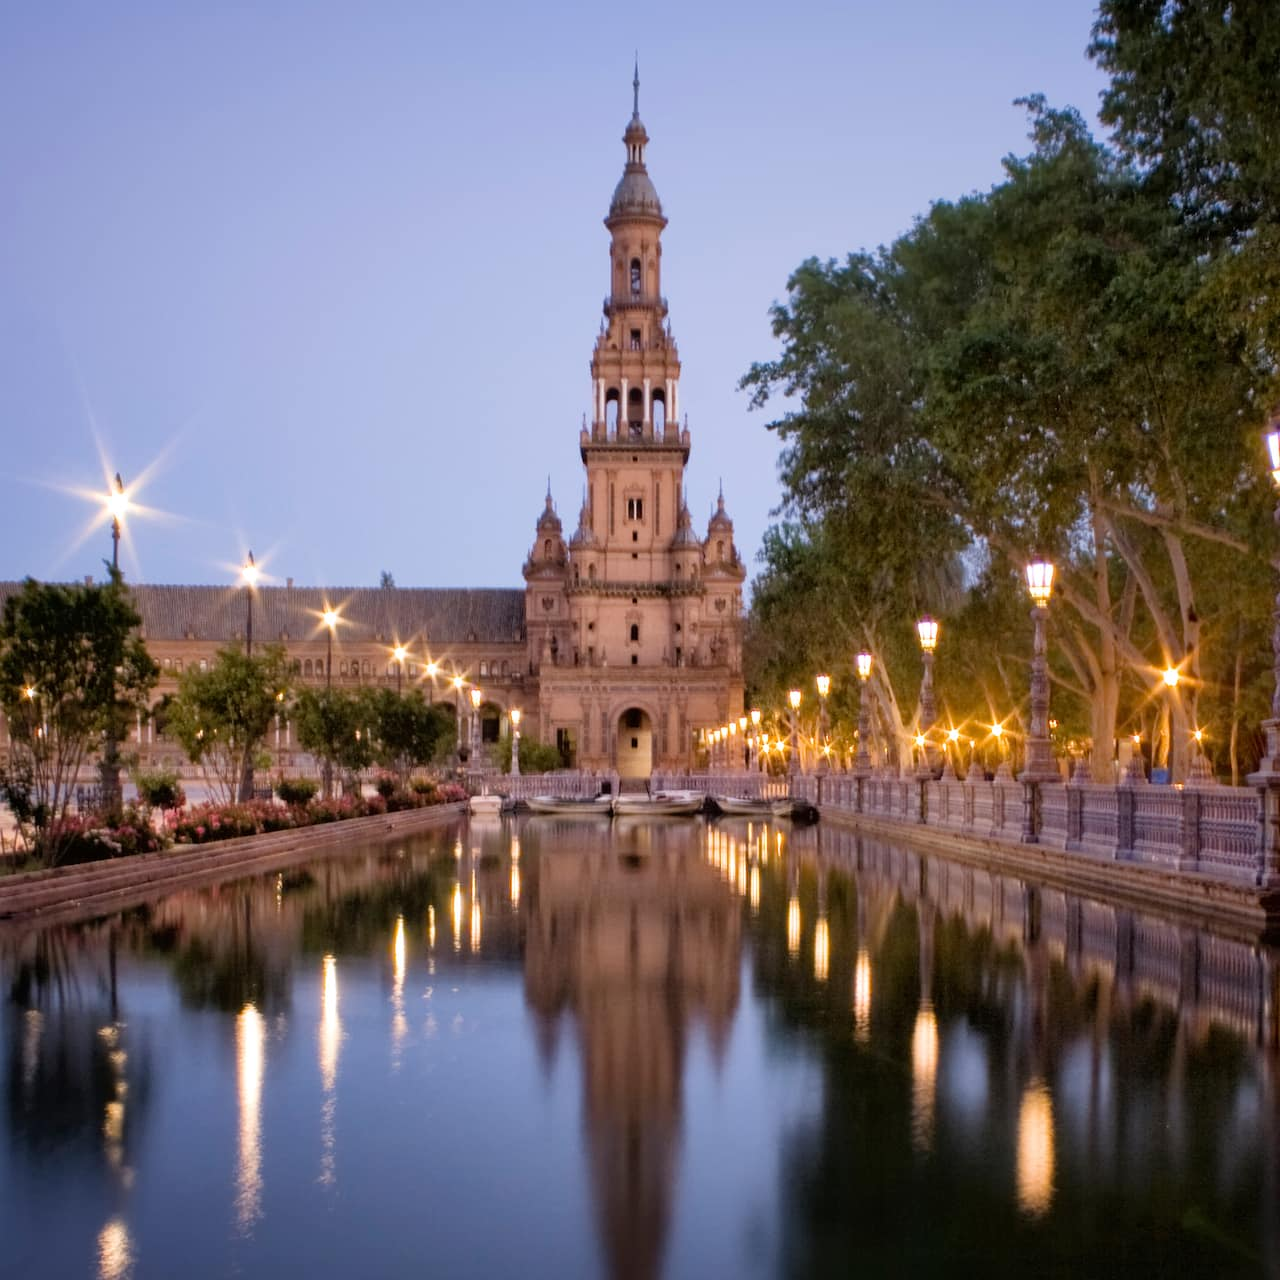 The Plaza de España at twilight